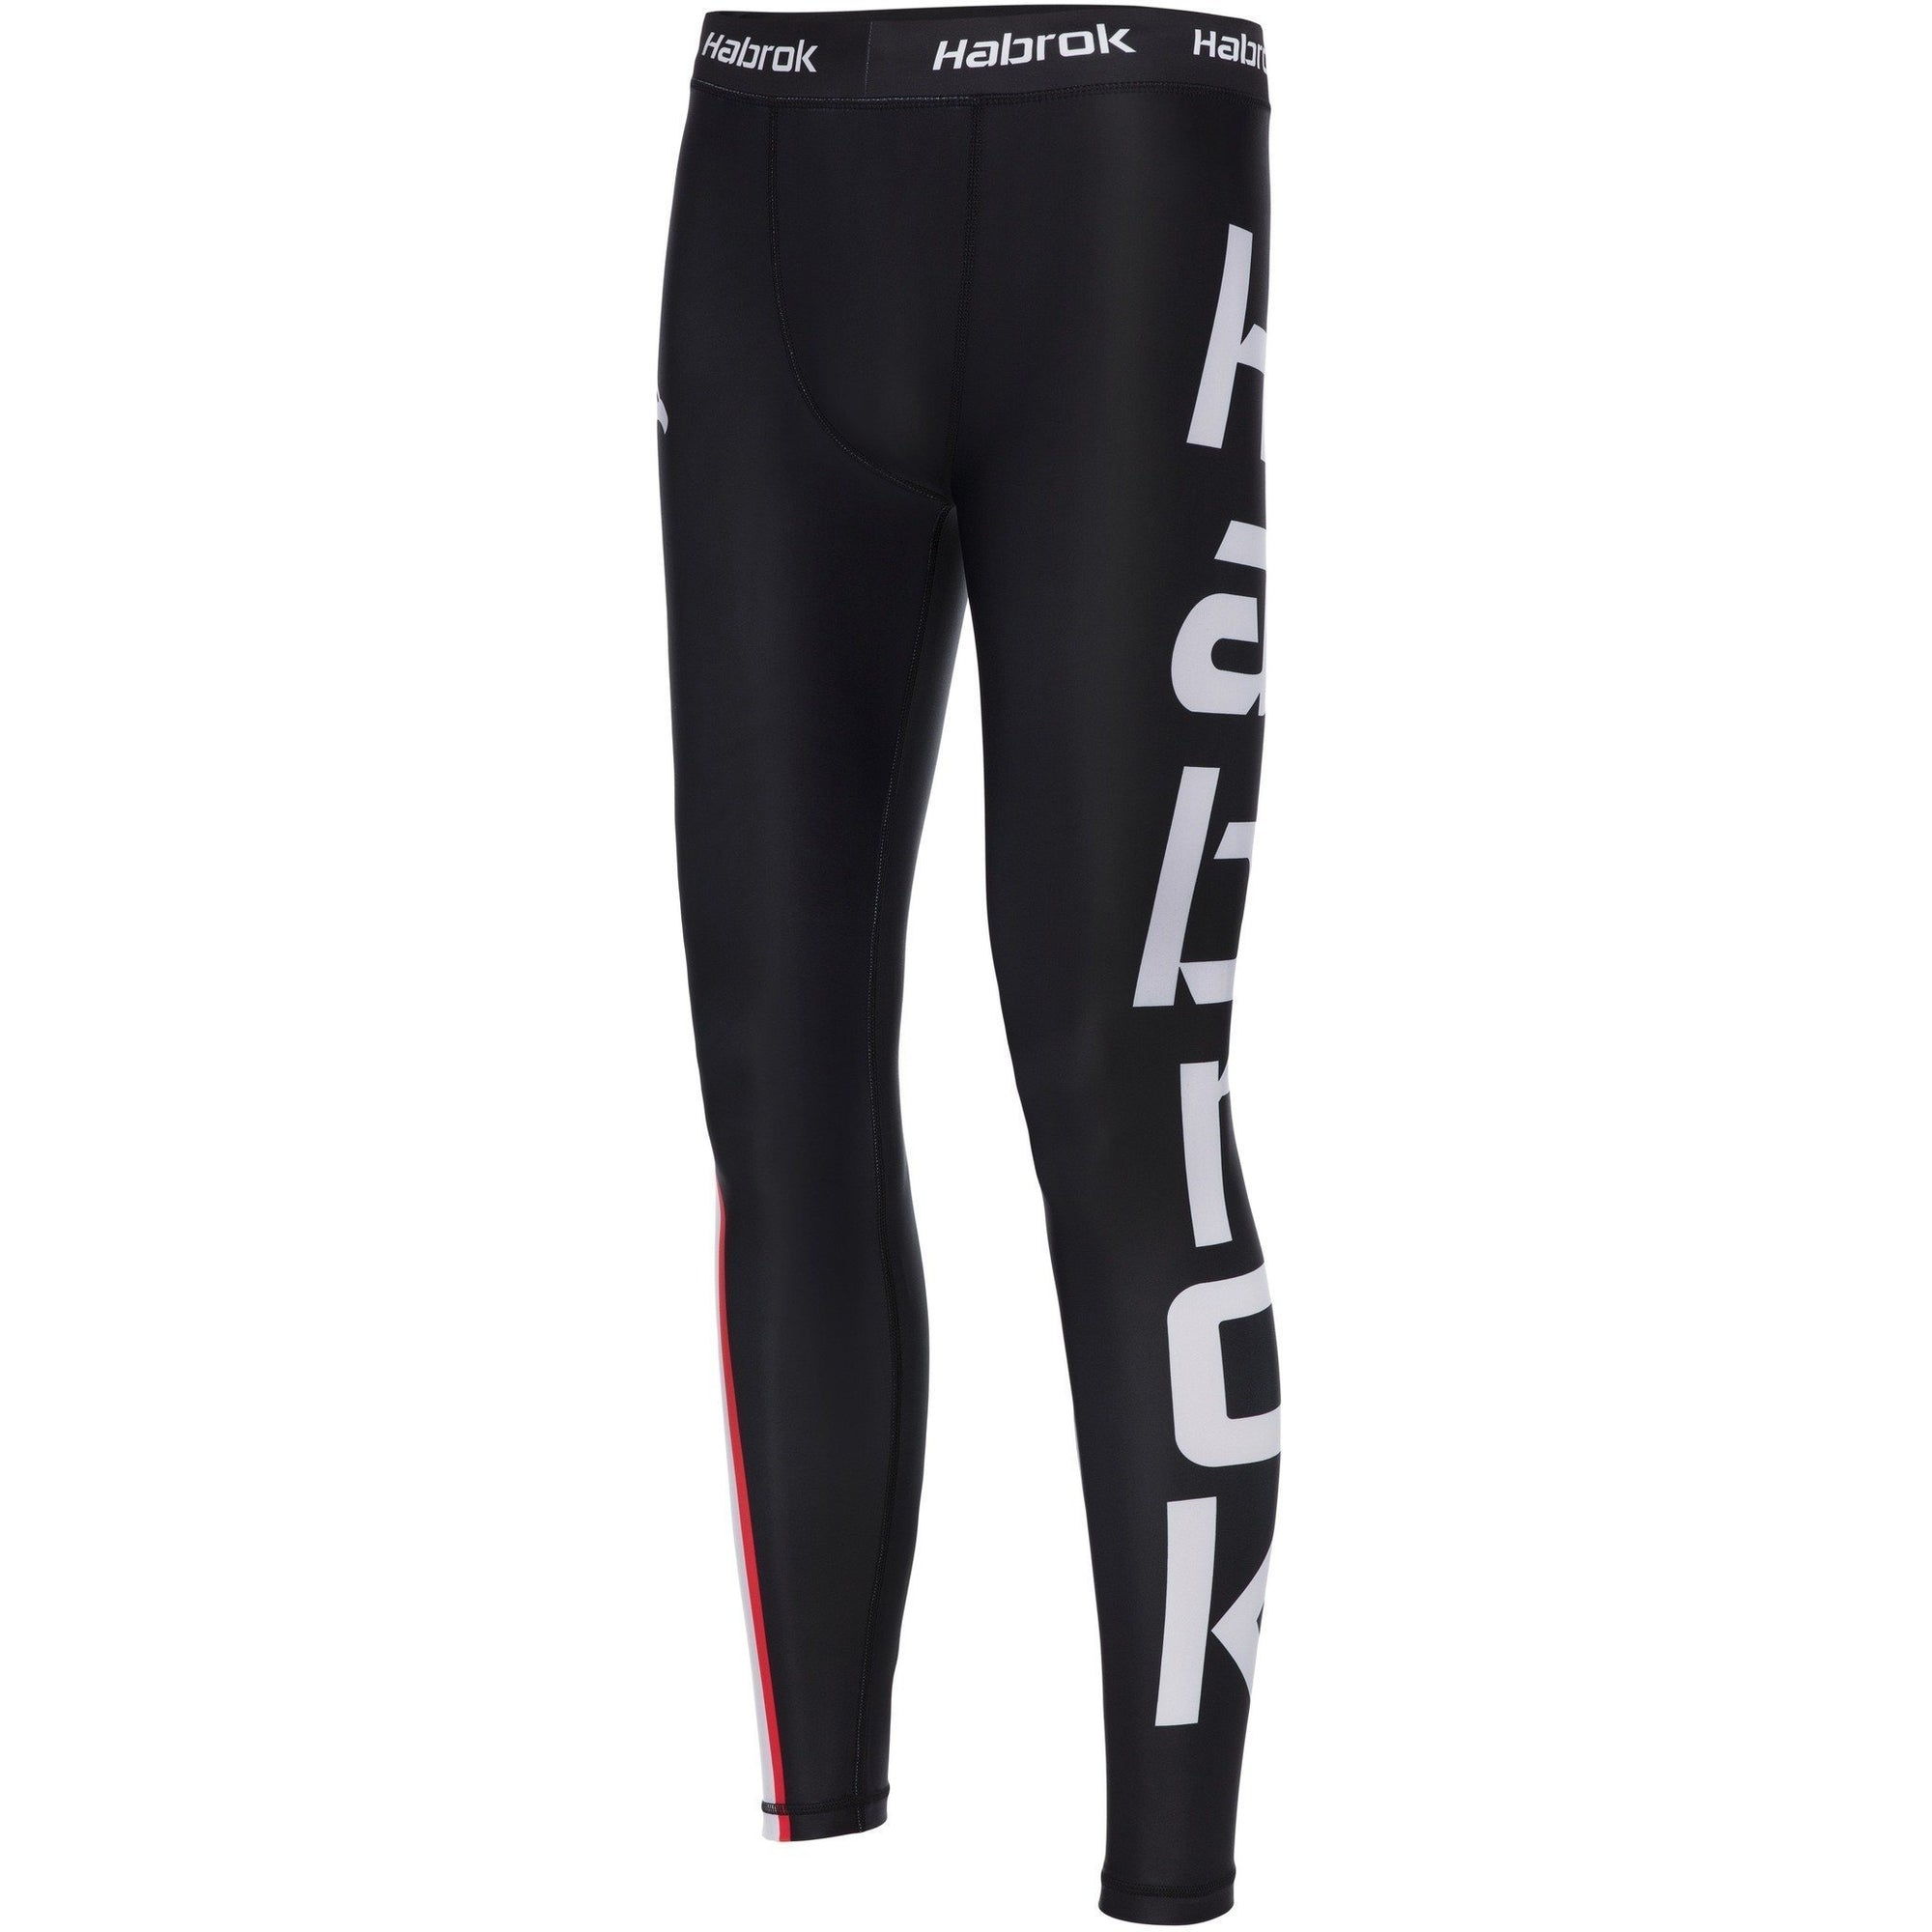 Performance Spats | Men, Spats - Habrok